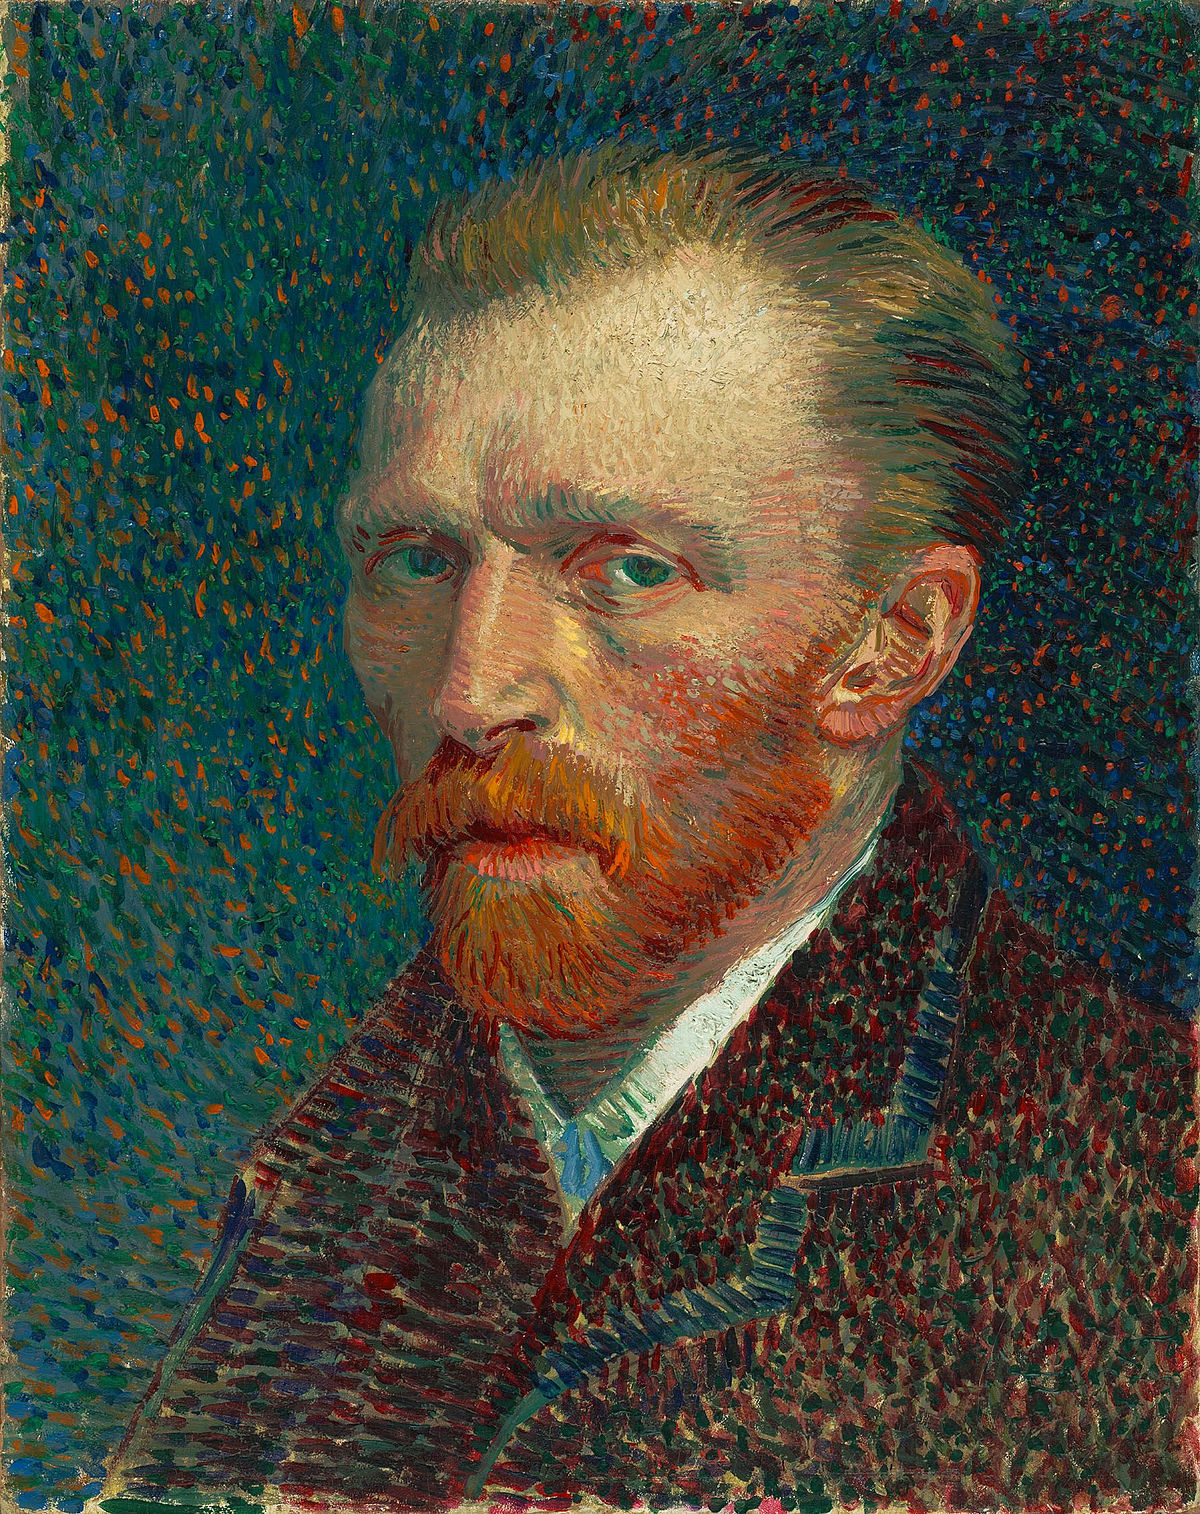 Vincent van gogh wikipedia for De slaapkamer vincent van gogh